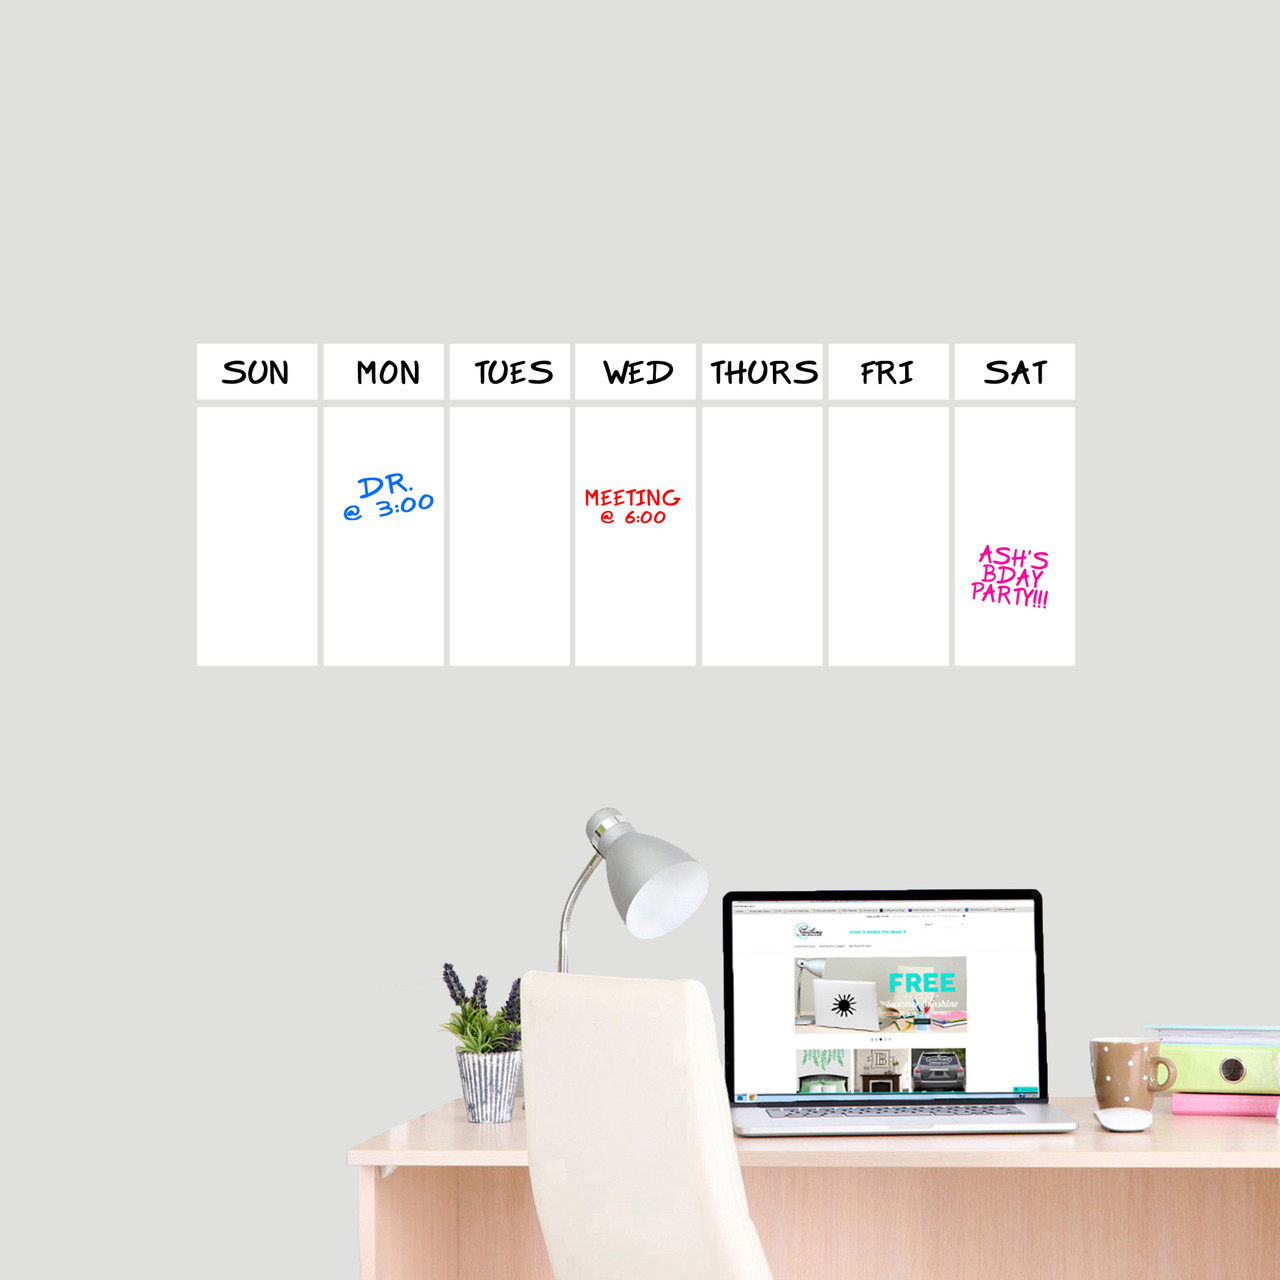 This week dry erase calendar wall decals 30 wide x 11 tall sample image